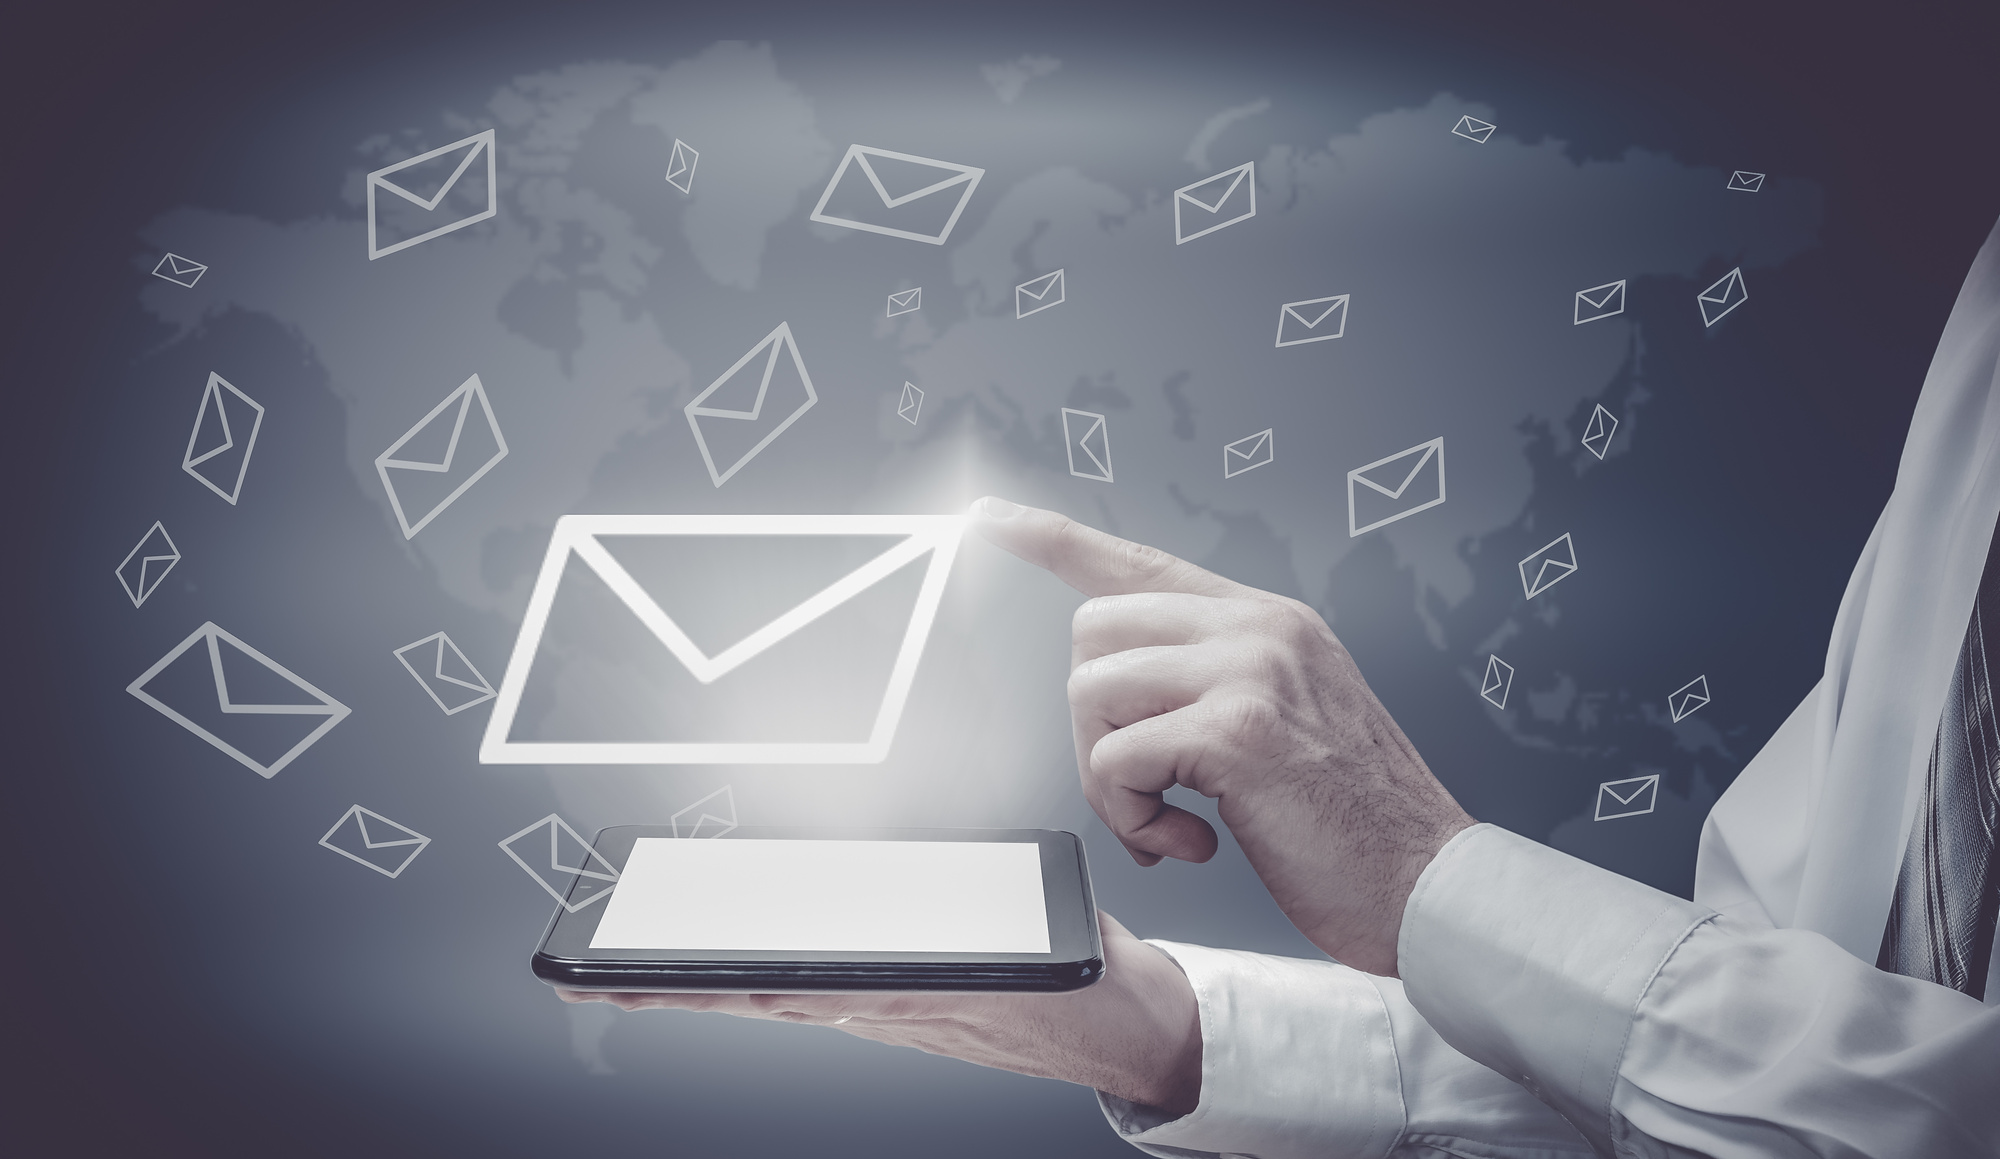 email marketing ideas